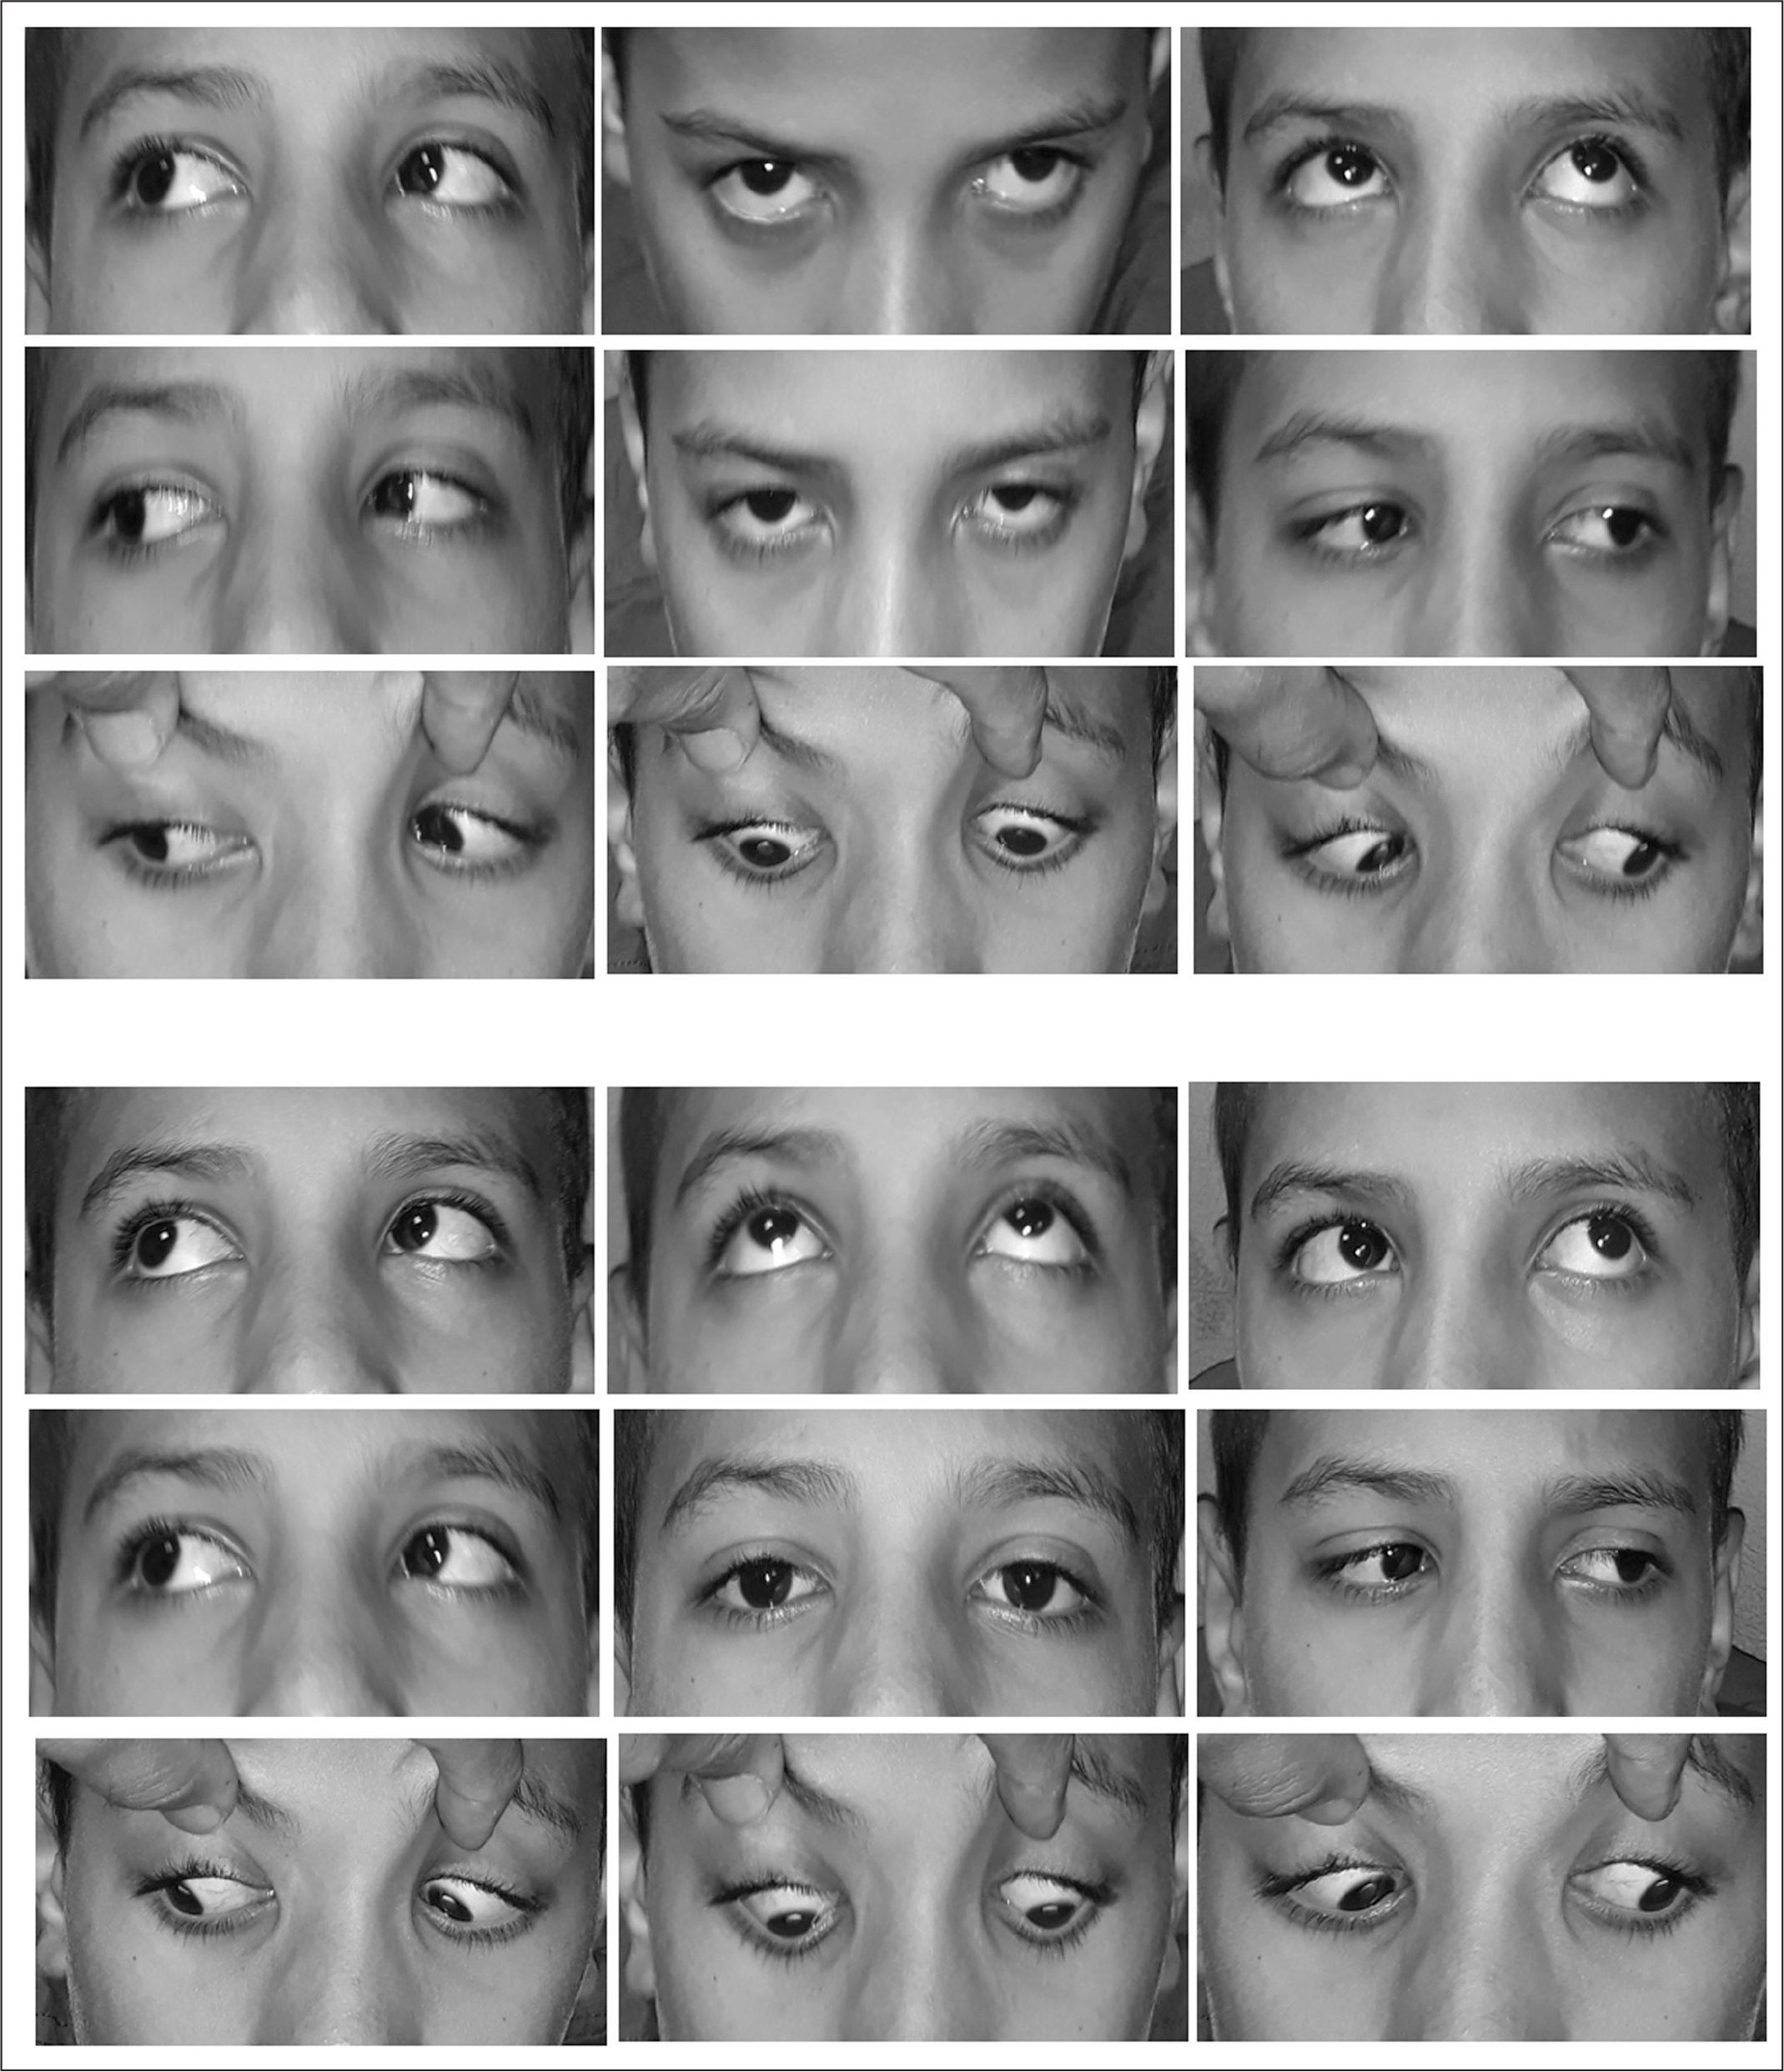 Top panels show preoperative photographs of a patient with V-pattern exotropia with no oblique dysfunction. Bottom panels show improvement of the V-pattern 6 months after bilateral lateral rectus recession 5 mm with half-tendon upward transposition.